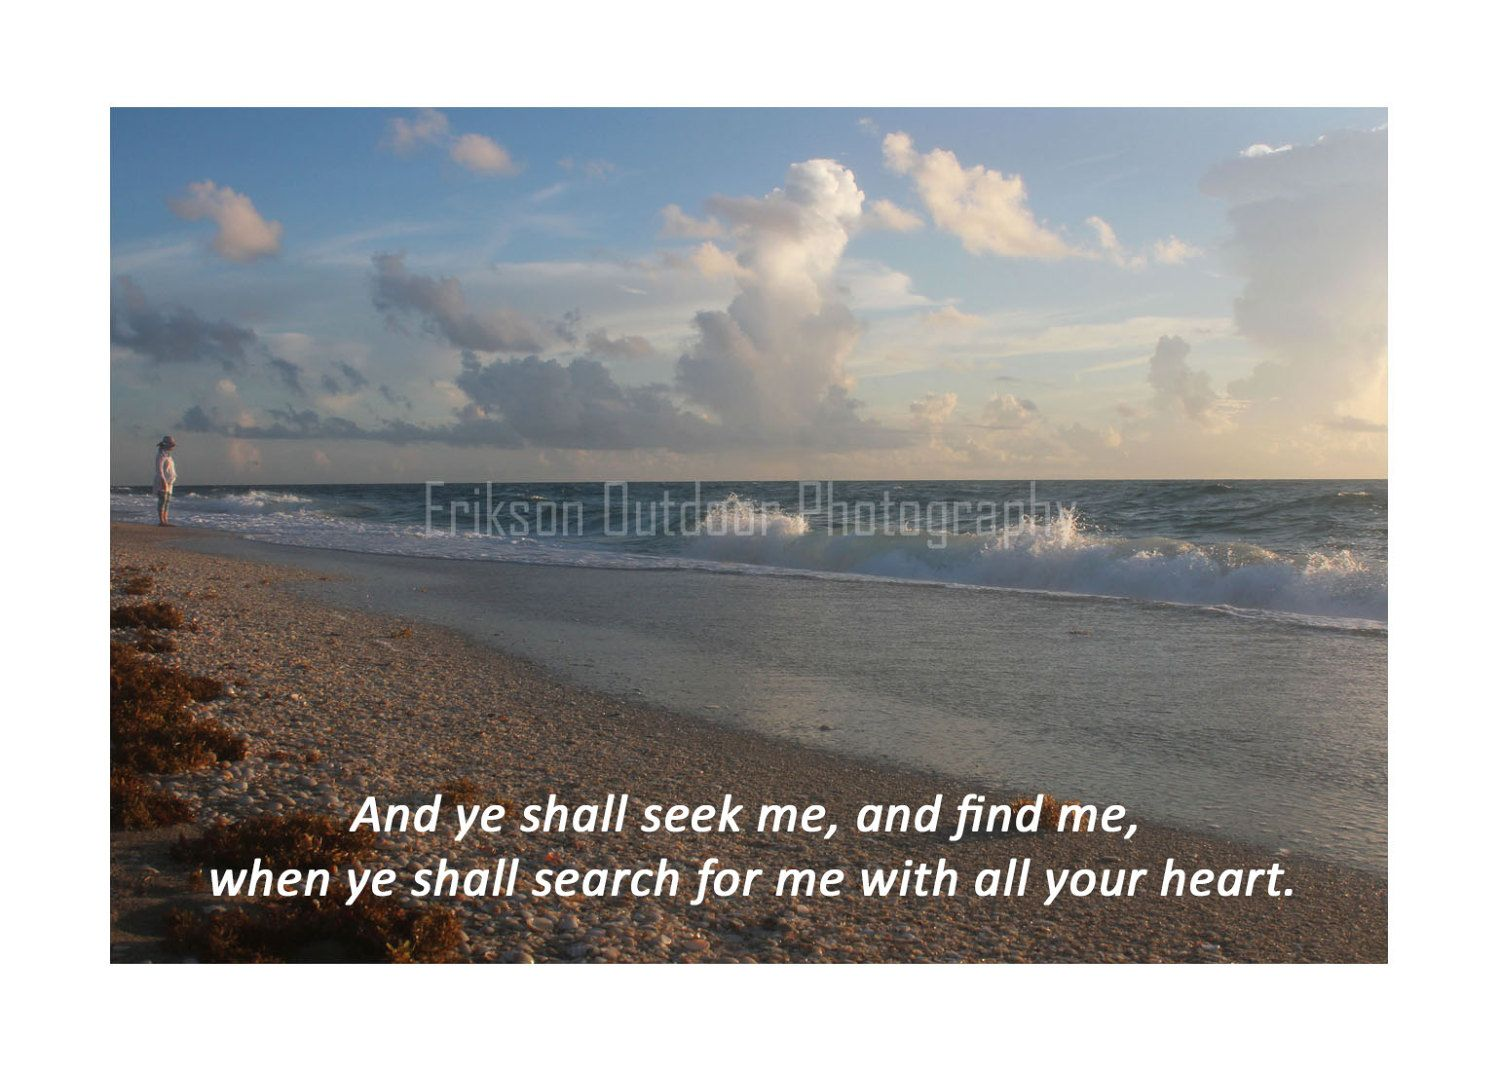 Scripture Greeting Cards Kjv With Bible Verse From Jeremiah 2913